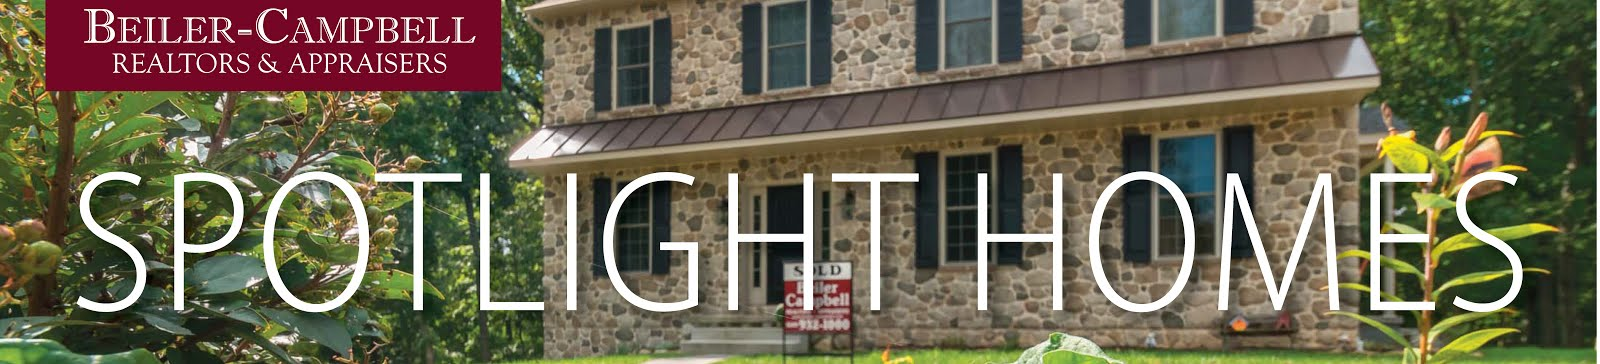 Beiler-Campbell Spotlight Homes